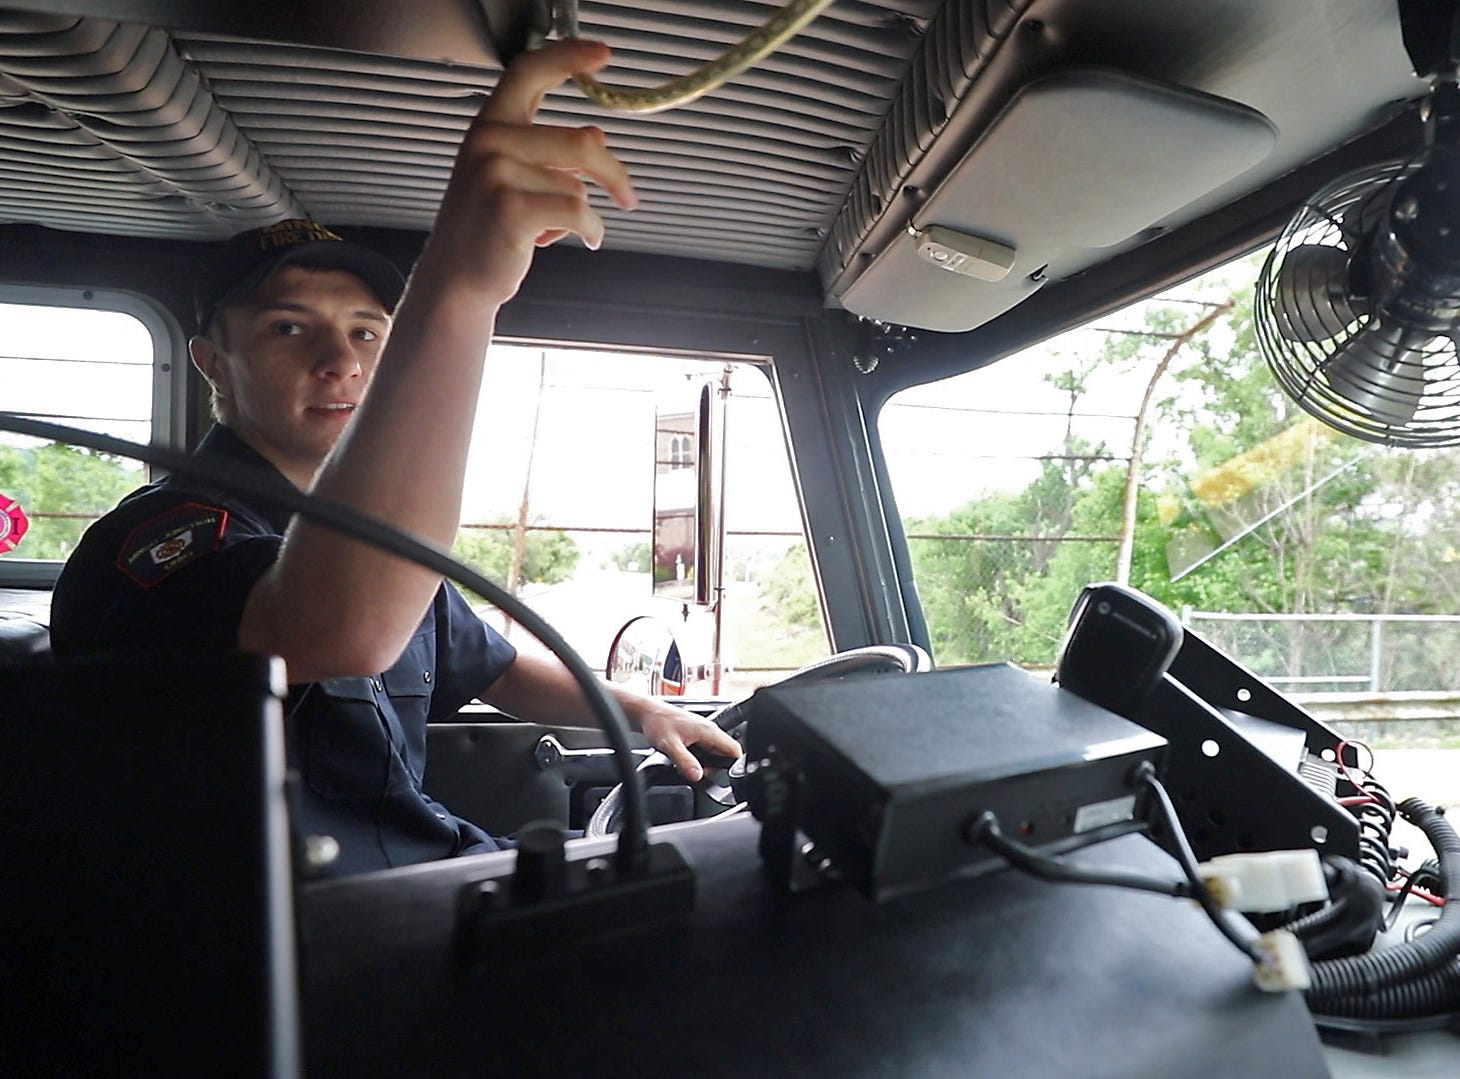 This Mingo Junction firefighter is 18 year old John Wright Jr. Here he drives the fire truck and pulls the horn. This was his last day of high school and he talks fondly of his love for his hometown of Mingo Junction regardless of the difficulties the town has and continues to face.